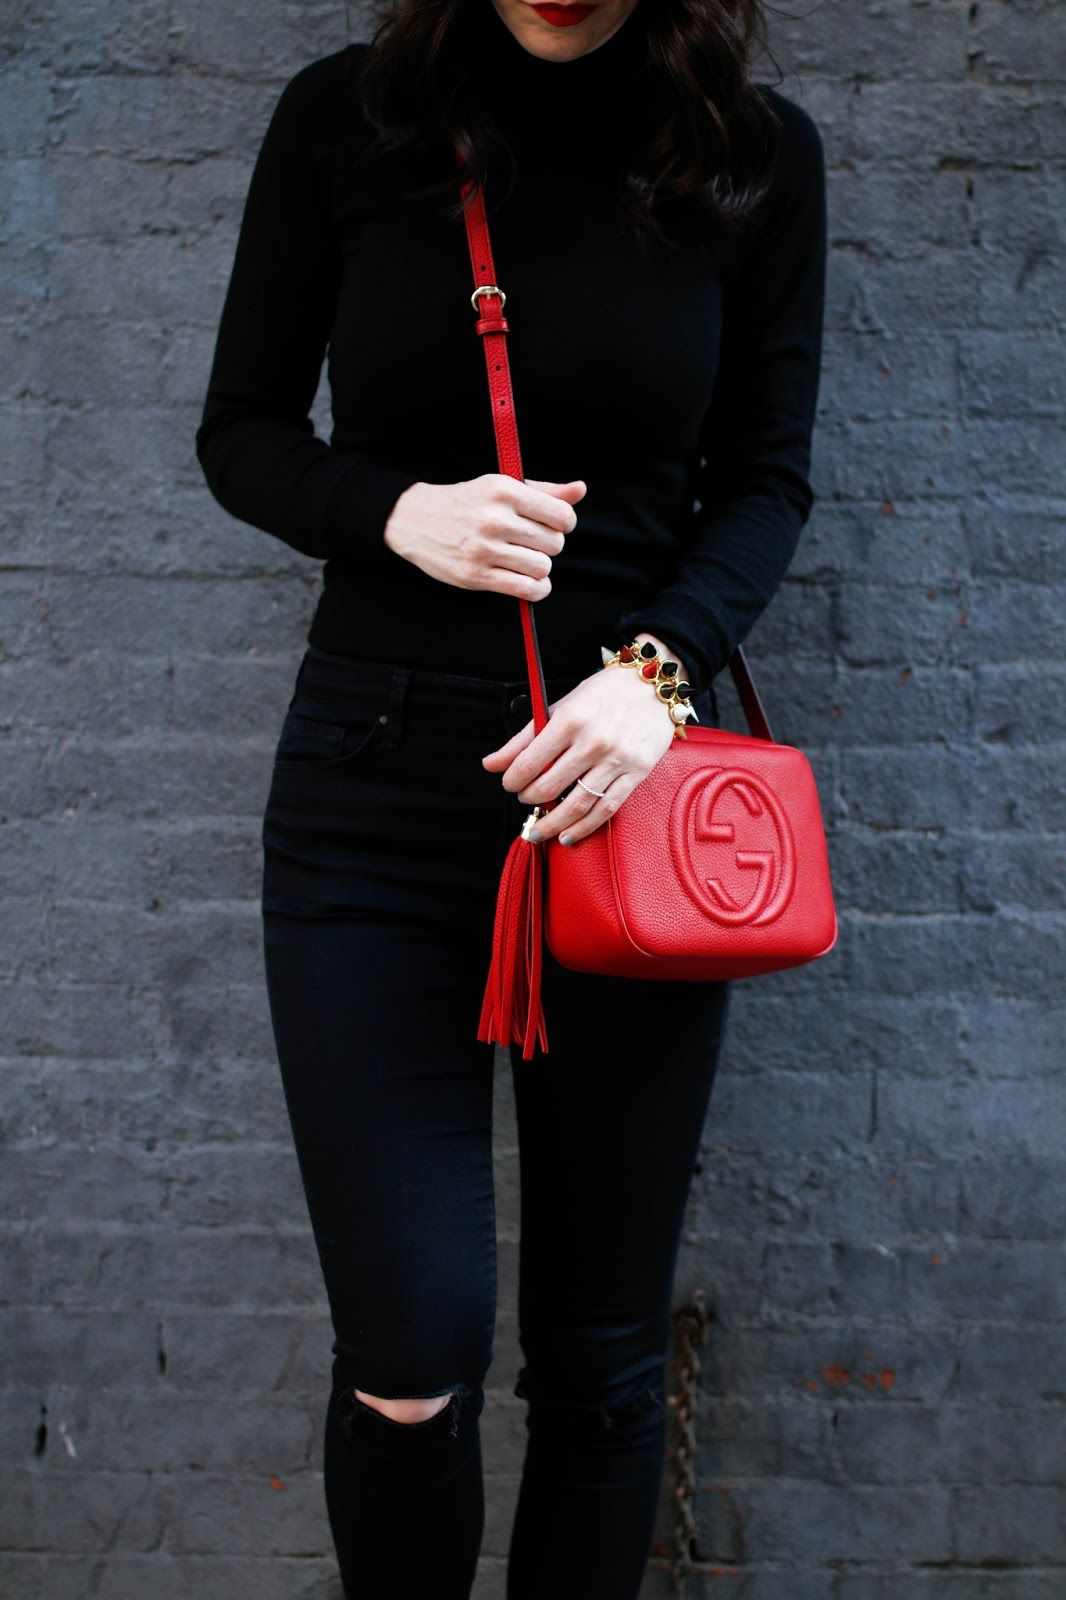 d2bcd3330a04a Gucci Disco Bag in red